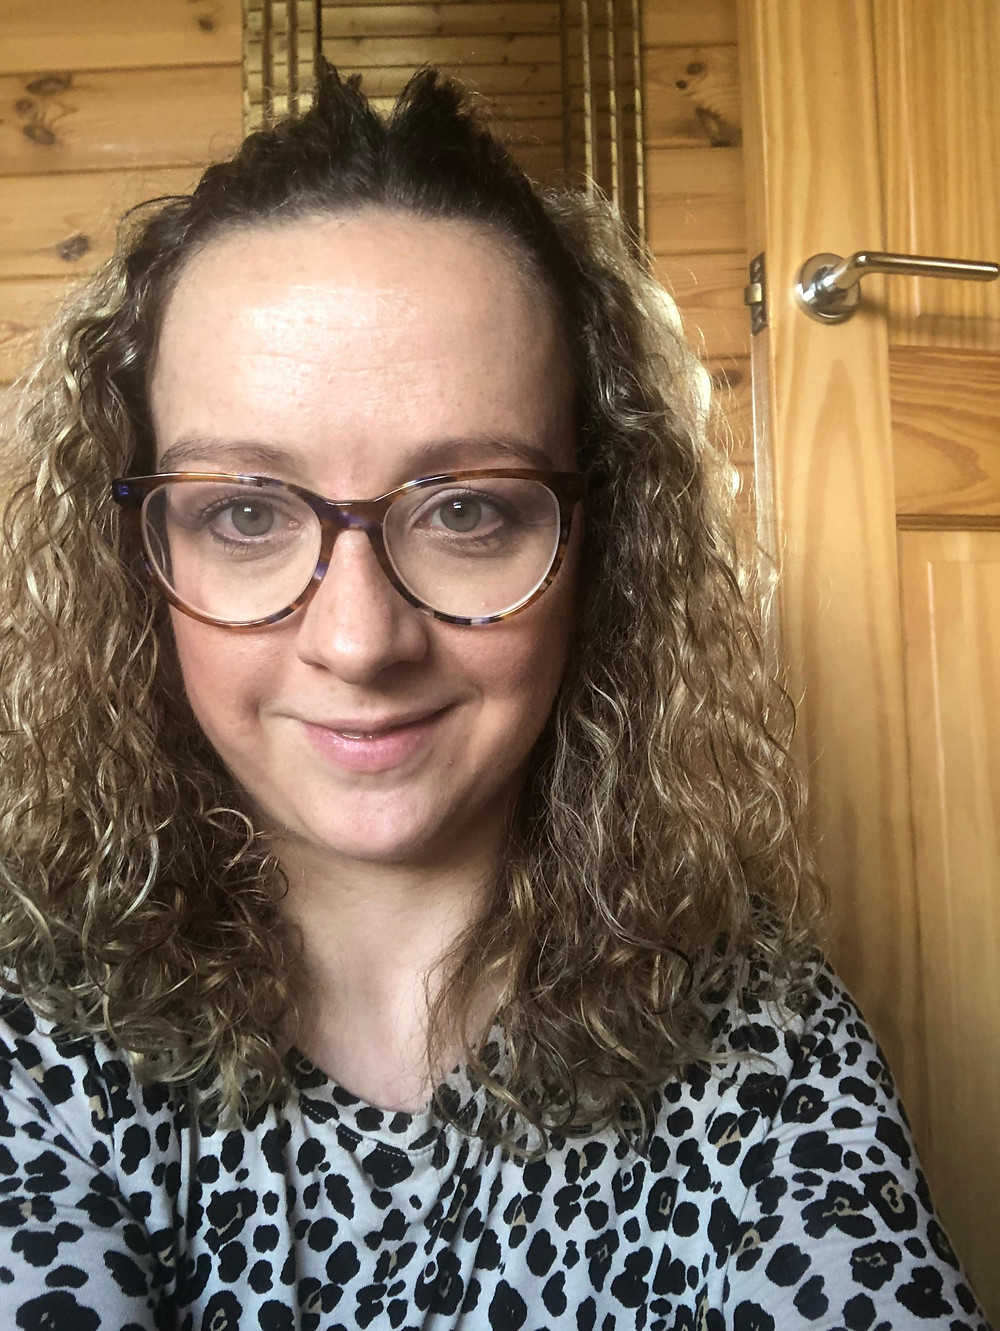 Carrie-Ann Lightley Disabled Travel Blogger wearing her glasses and a leopard print top